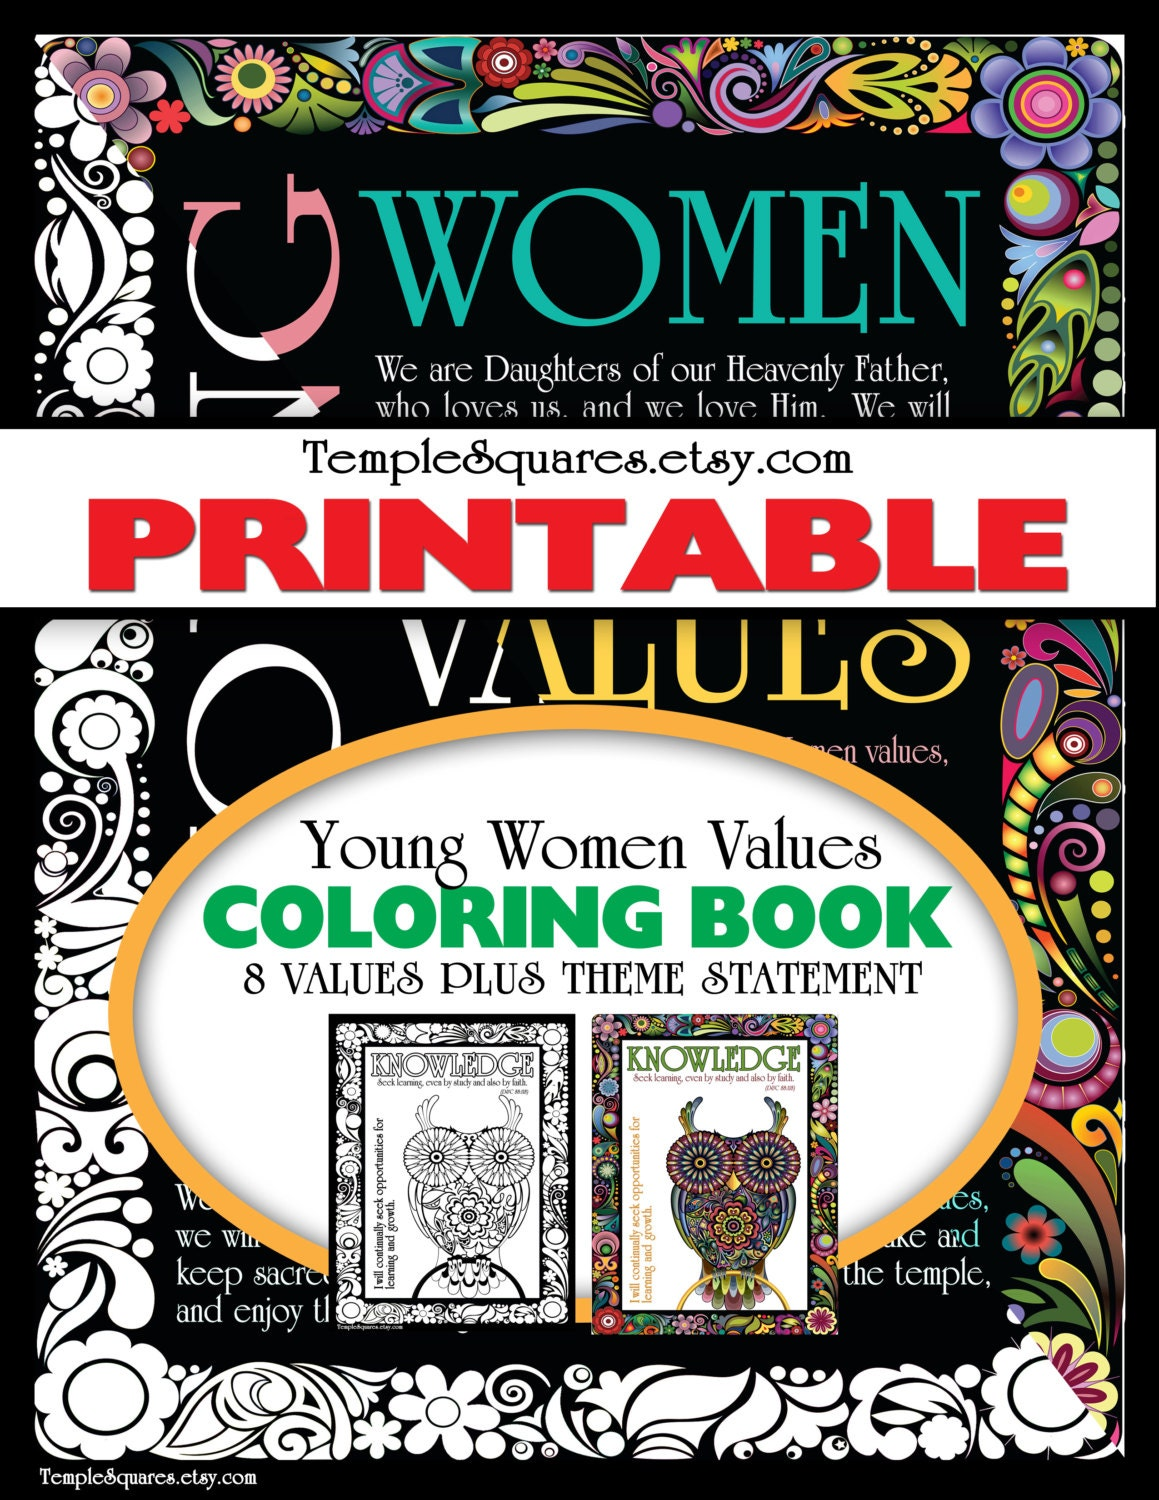 Printable Adult Coloring Book LDS YW Young Women Values